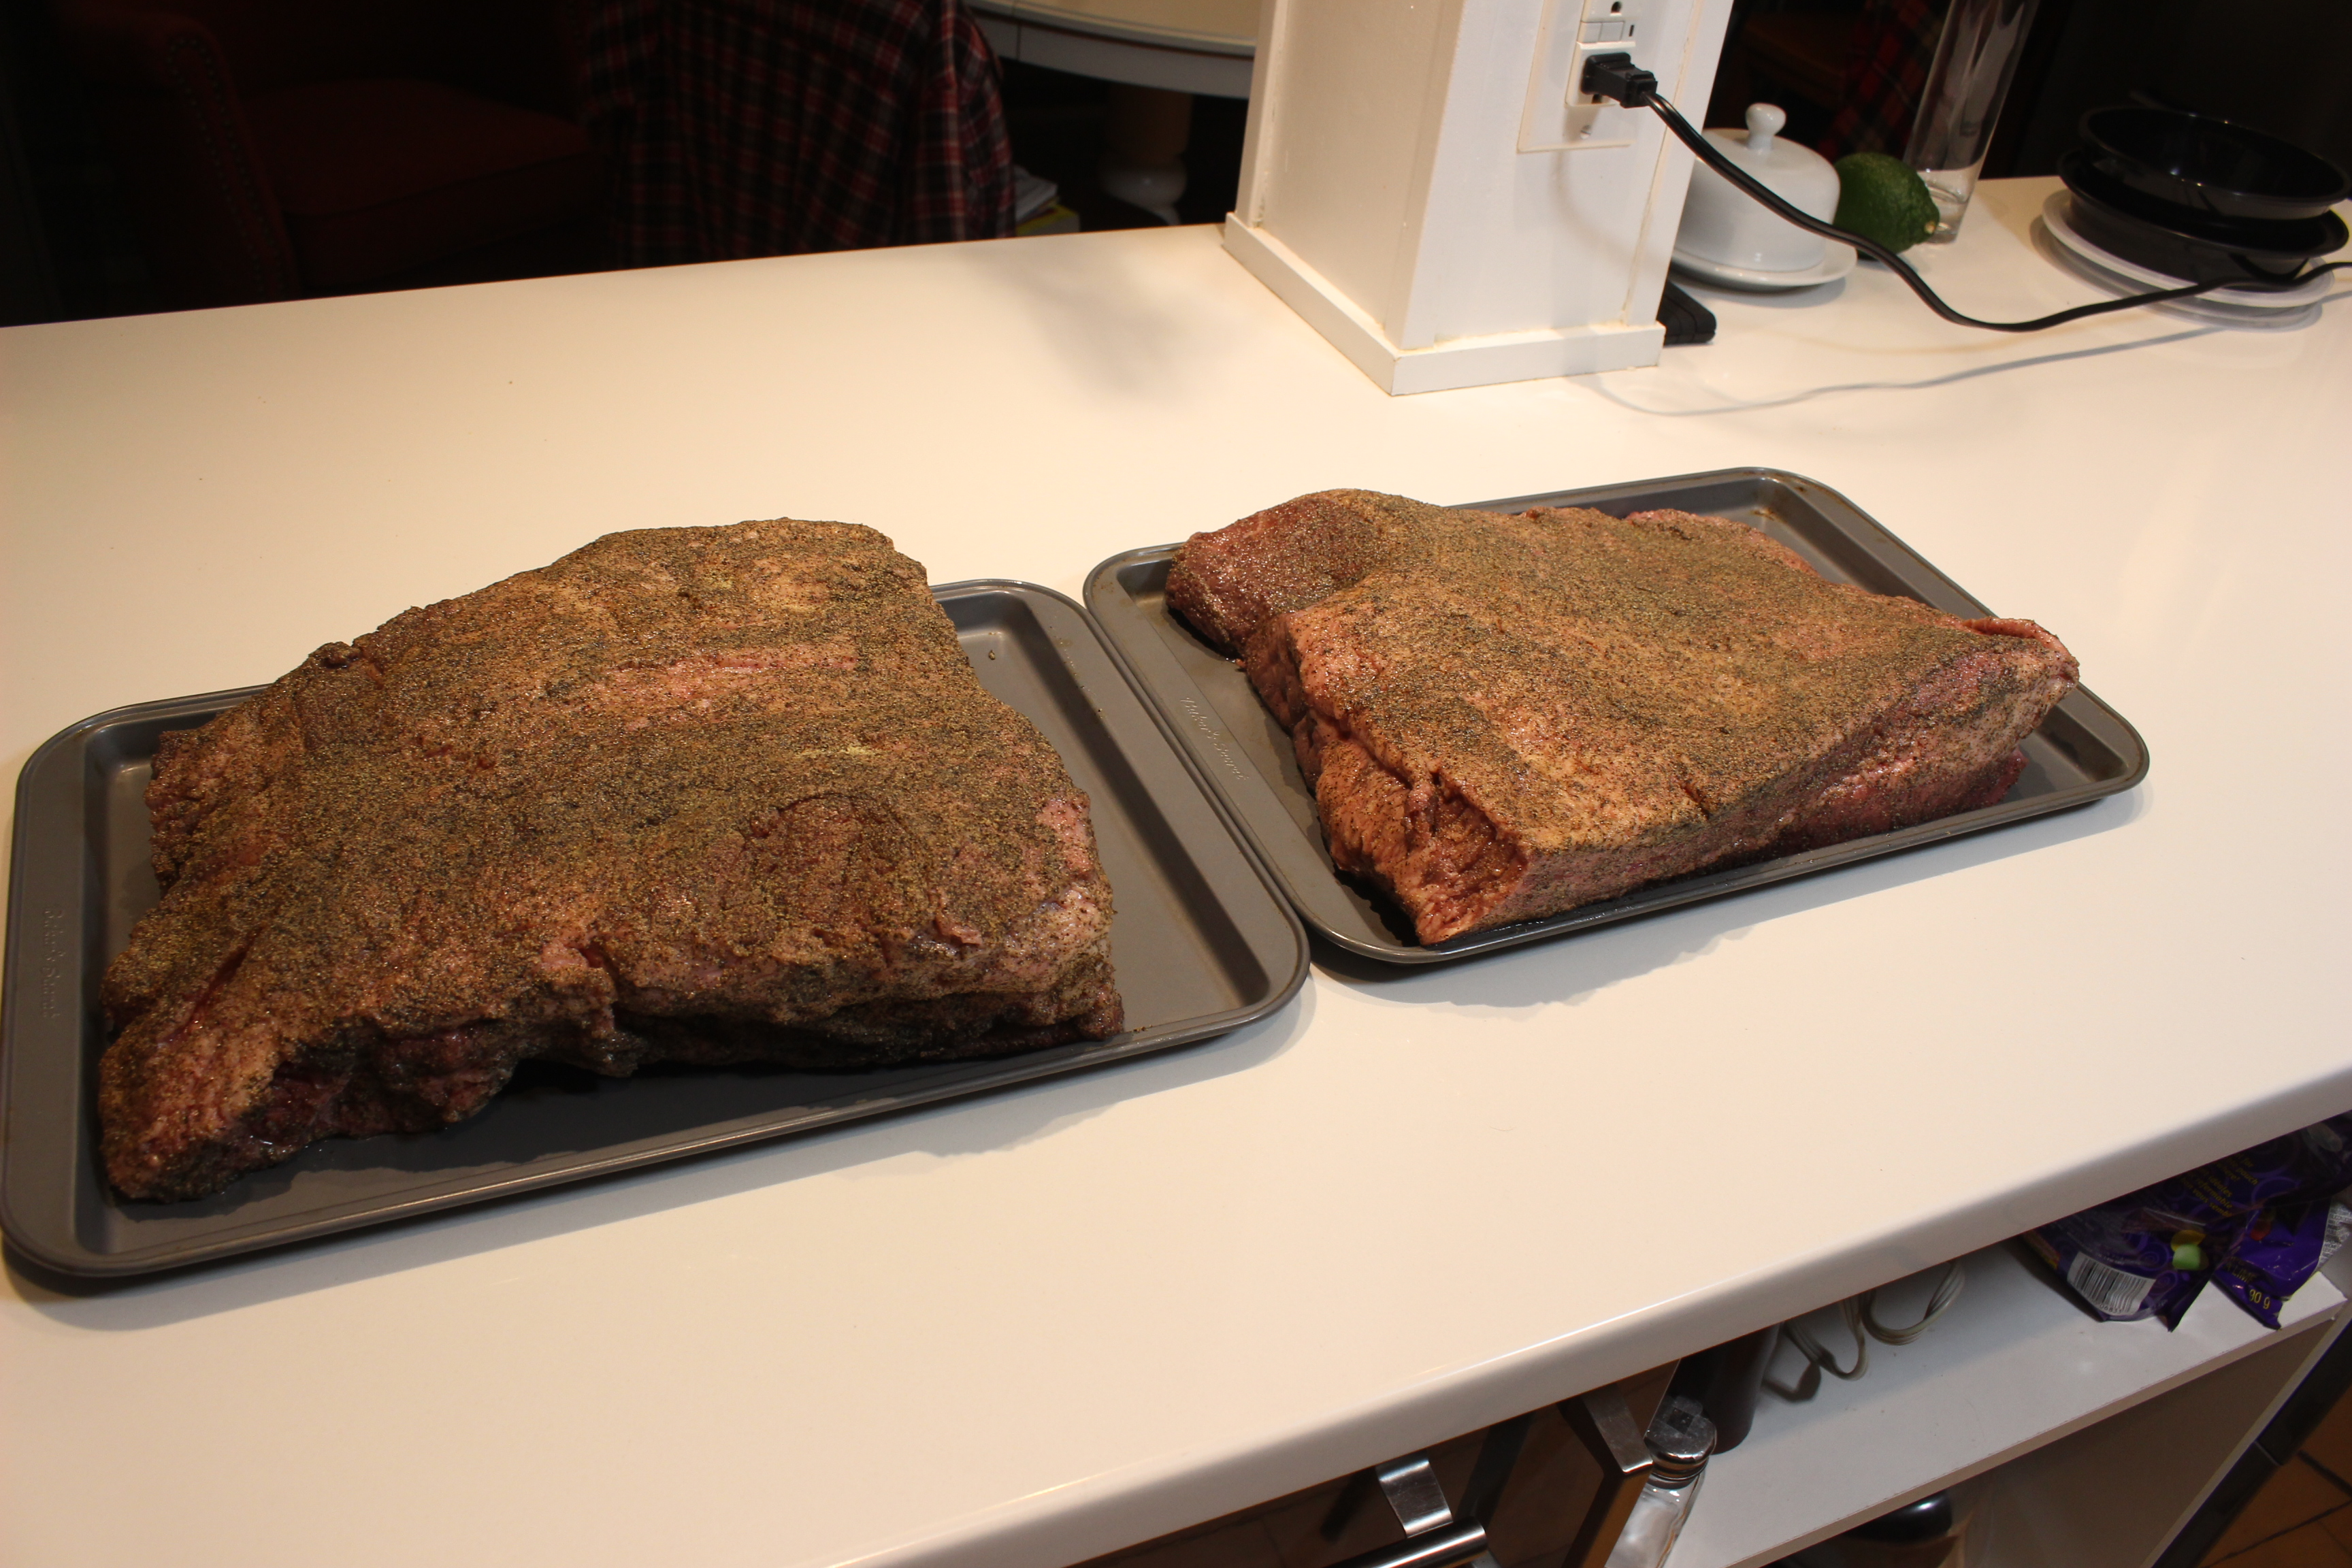 Picture of Trimming and Preparing the Brisket